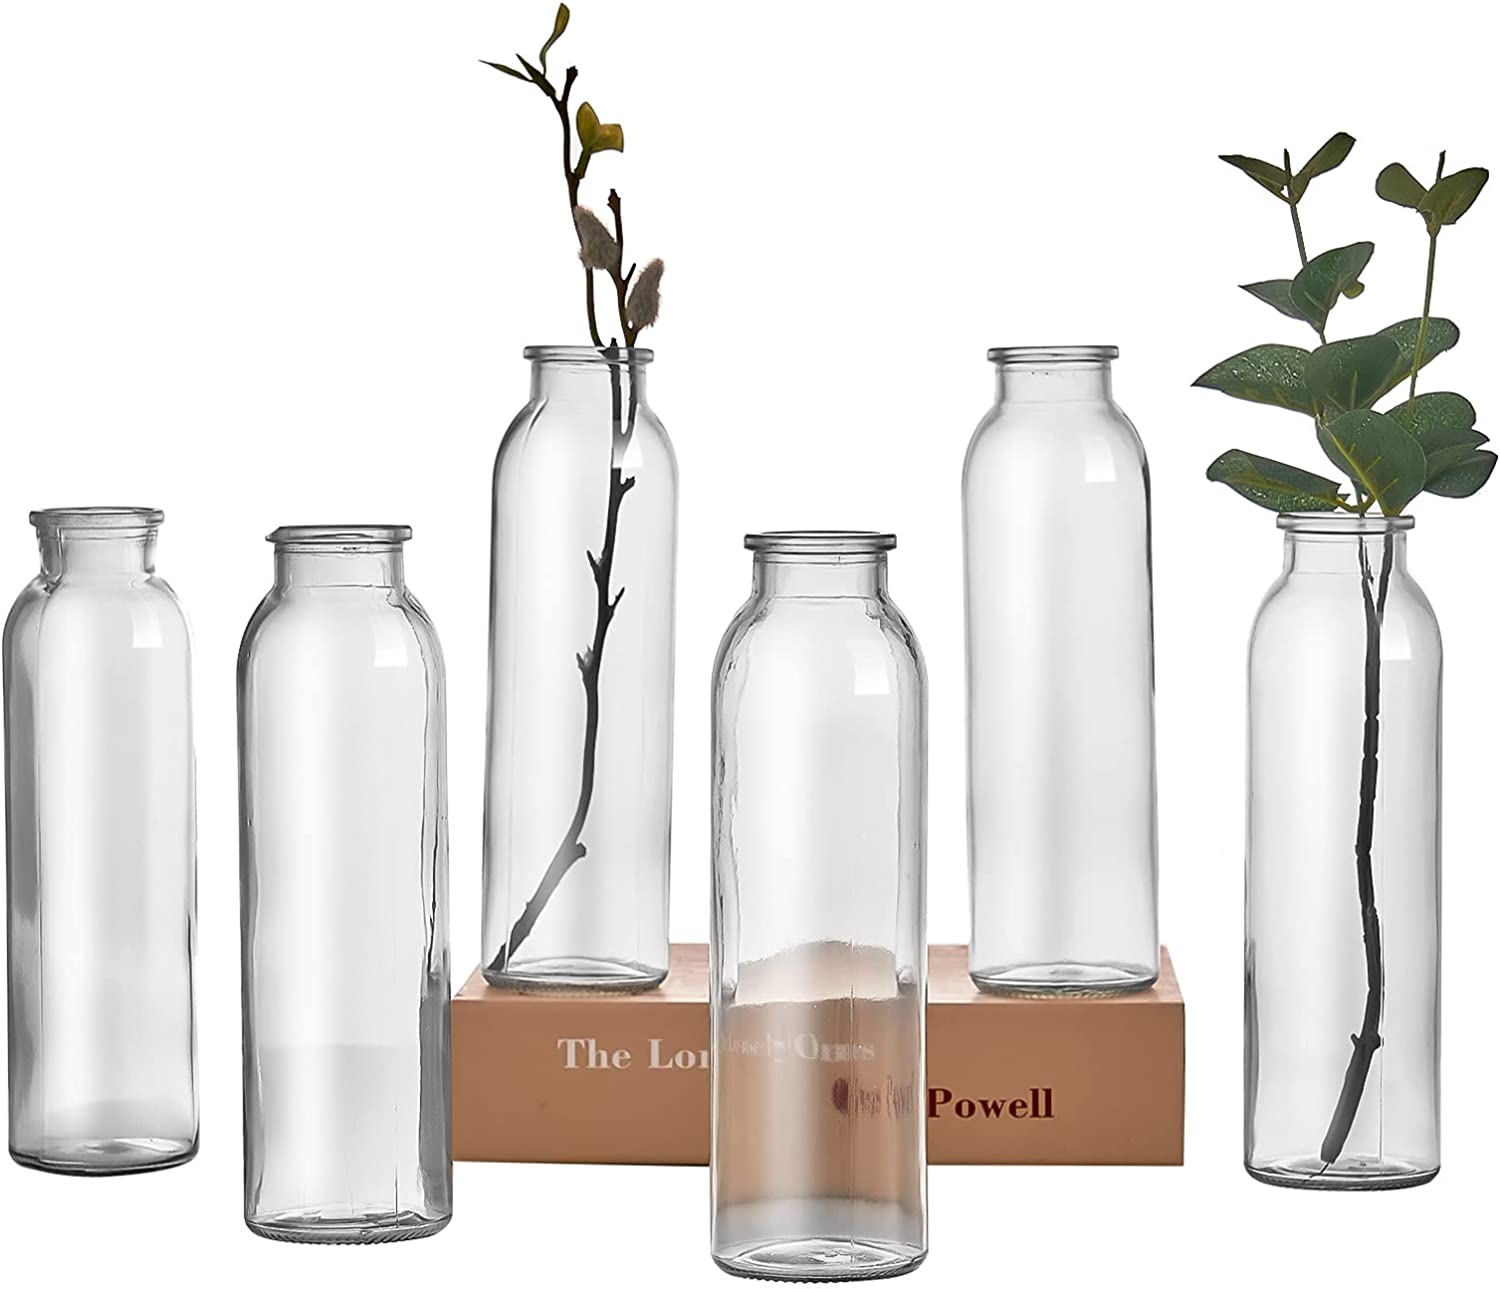 RESYOTE Bud Vase Set of 6, Decorative Glass Bottles, Apothecary Jars Bud Vase for Home Decor Wedding Reception(Tall Clear)